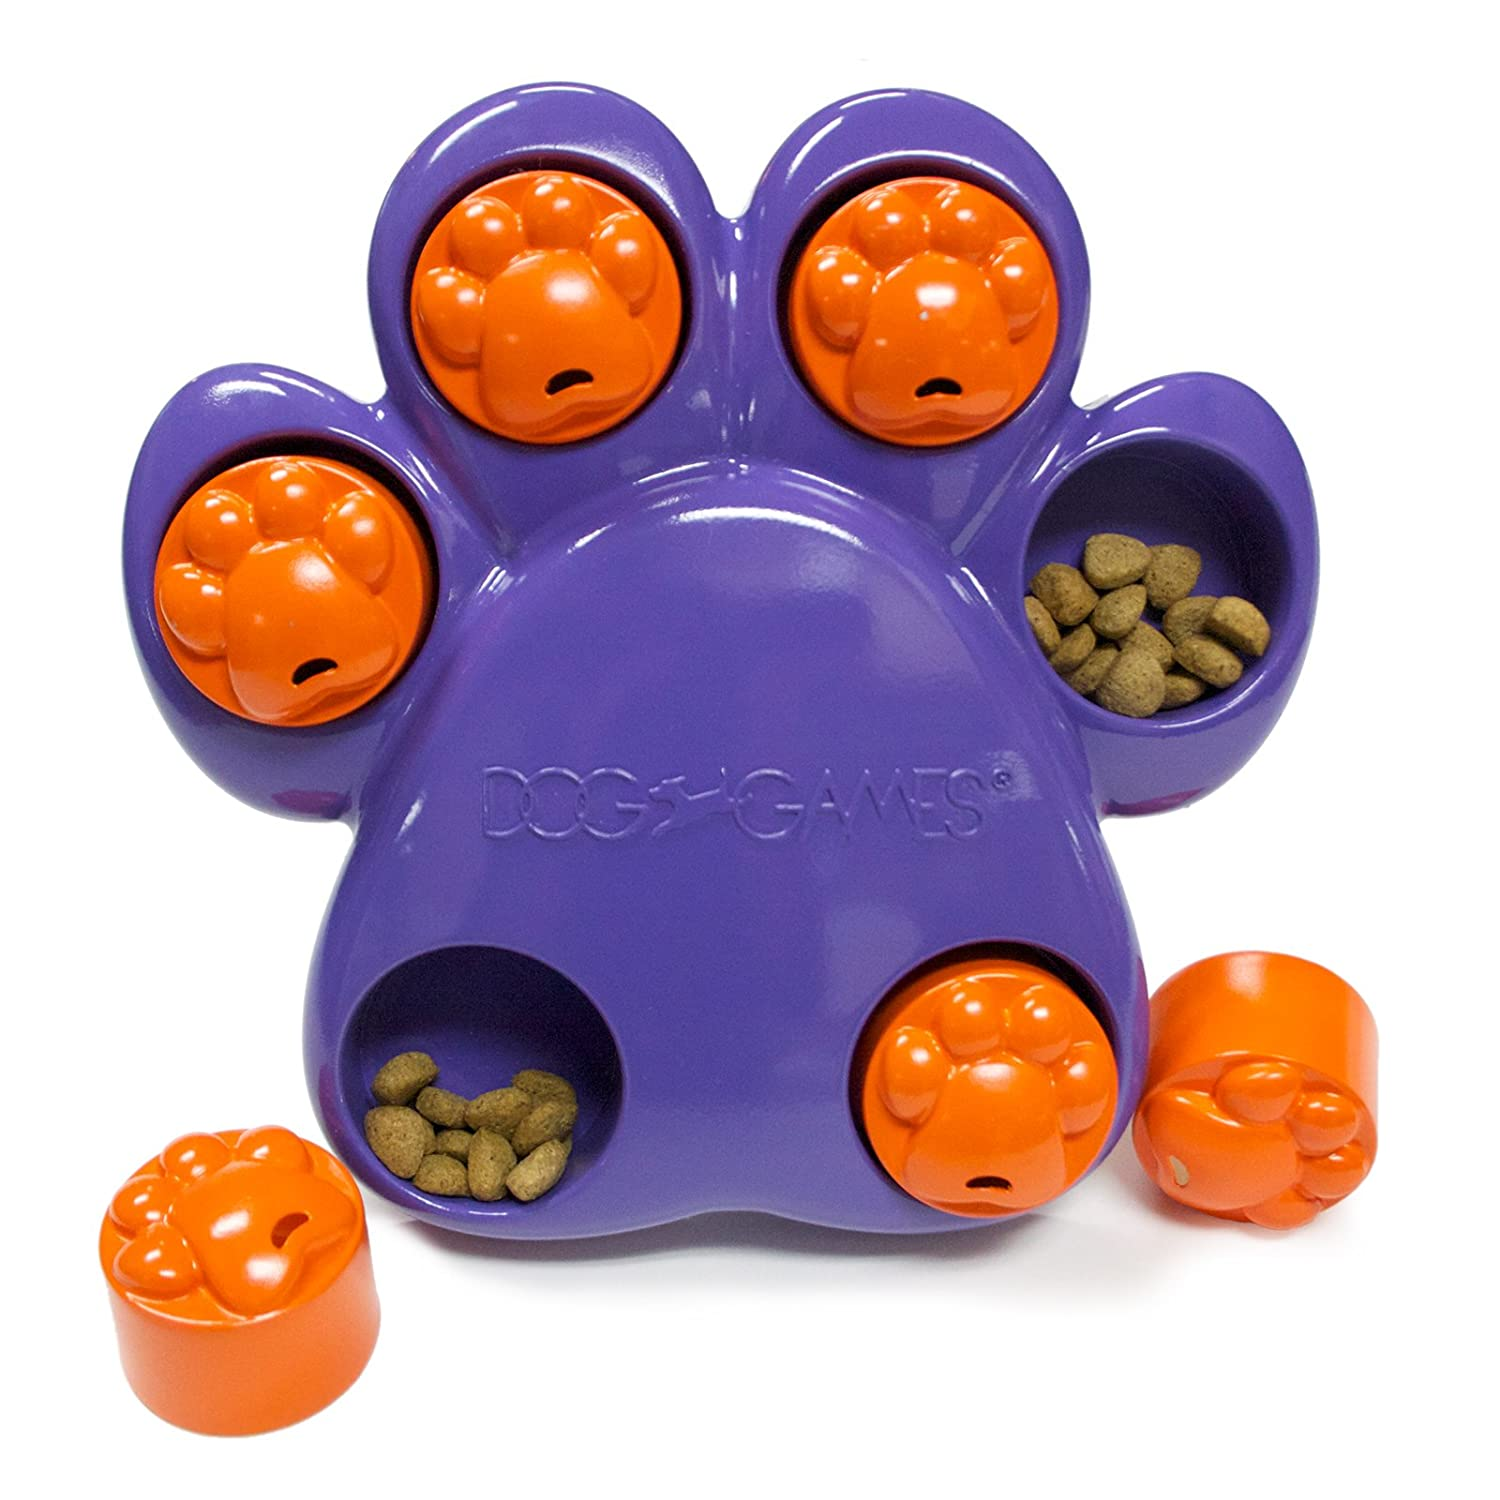 Interactive Dog With Puppies Toy